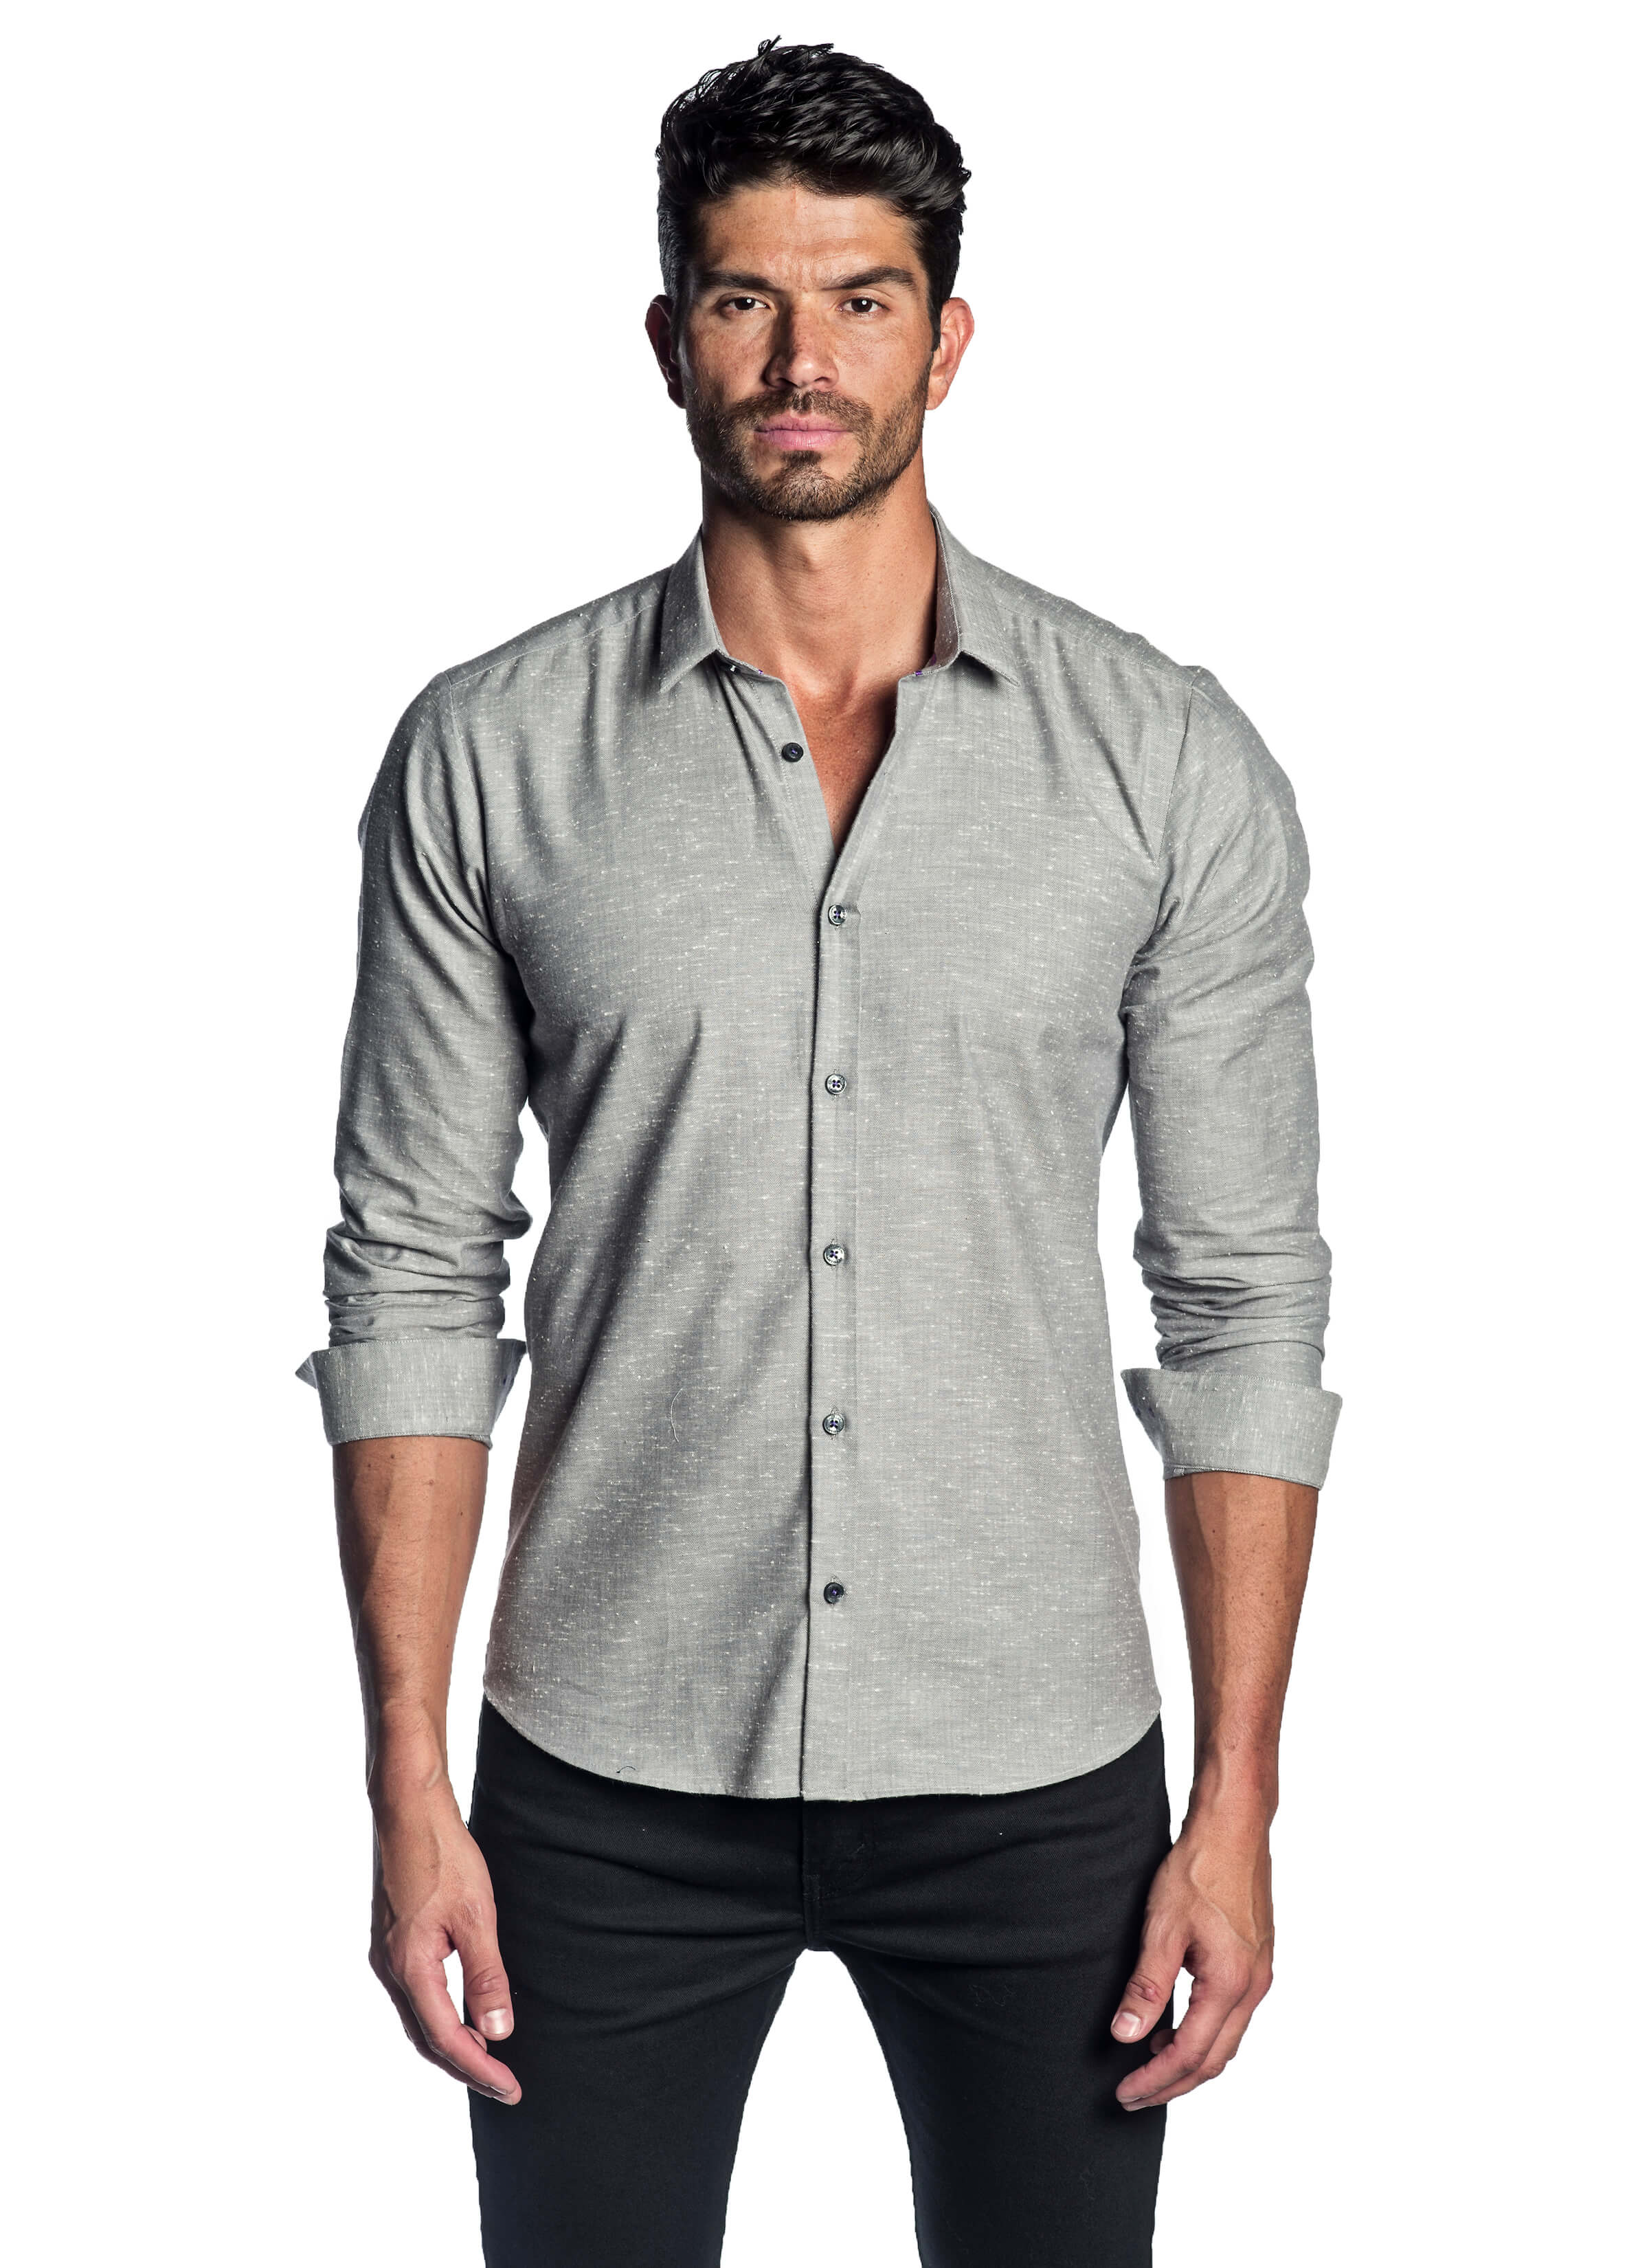 Grey Solid Shirt for Men AH-T-2042 - Jared Lang